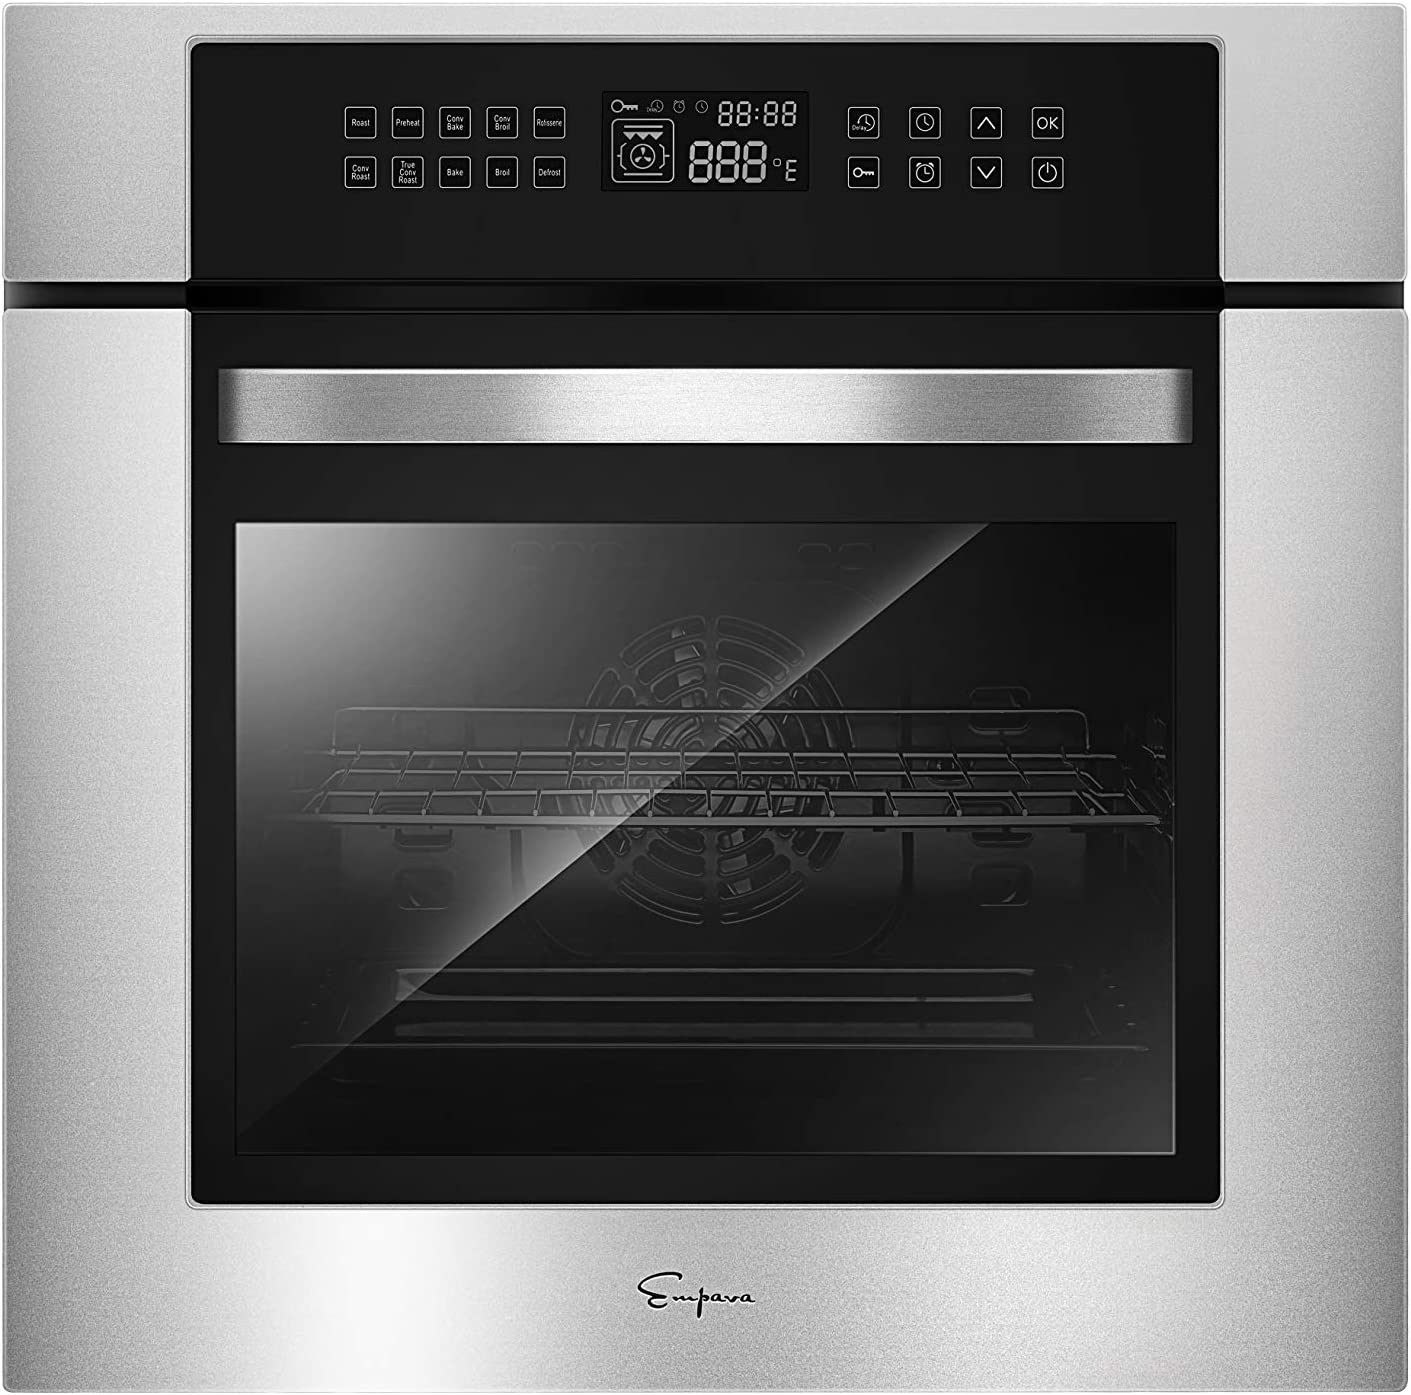 Empava 24 in. Electric Single Wall Oven Convection with 10 Cooking Functions Deluxe 360° ROTISSERIE with Sensitive Touch Control in Stainless Steel Model 2020, Black